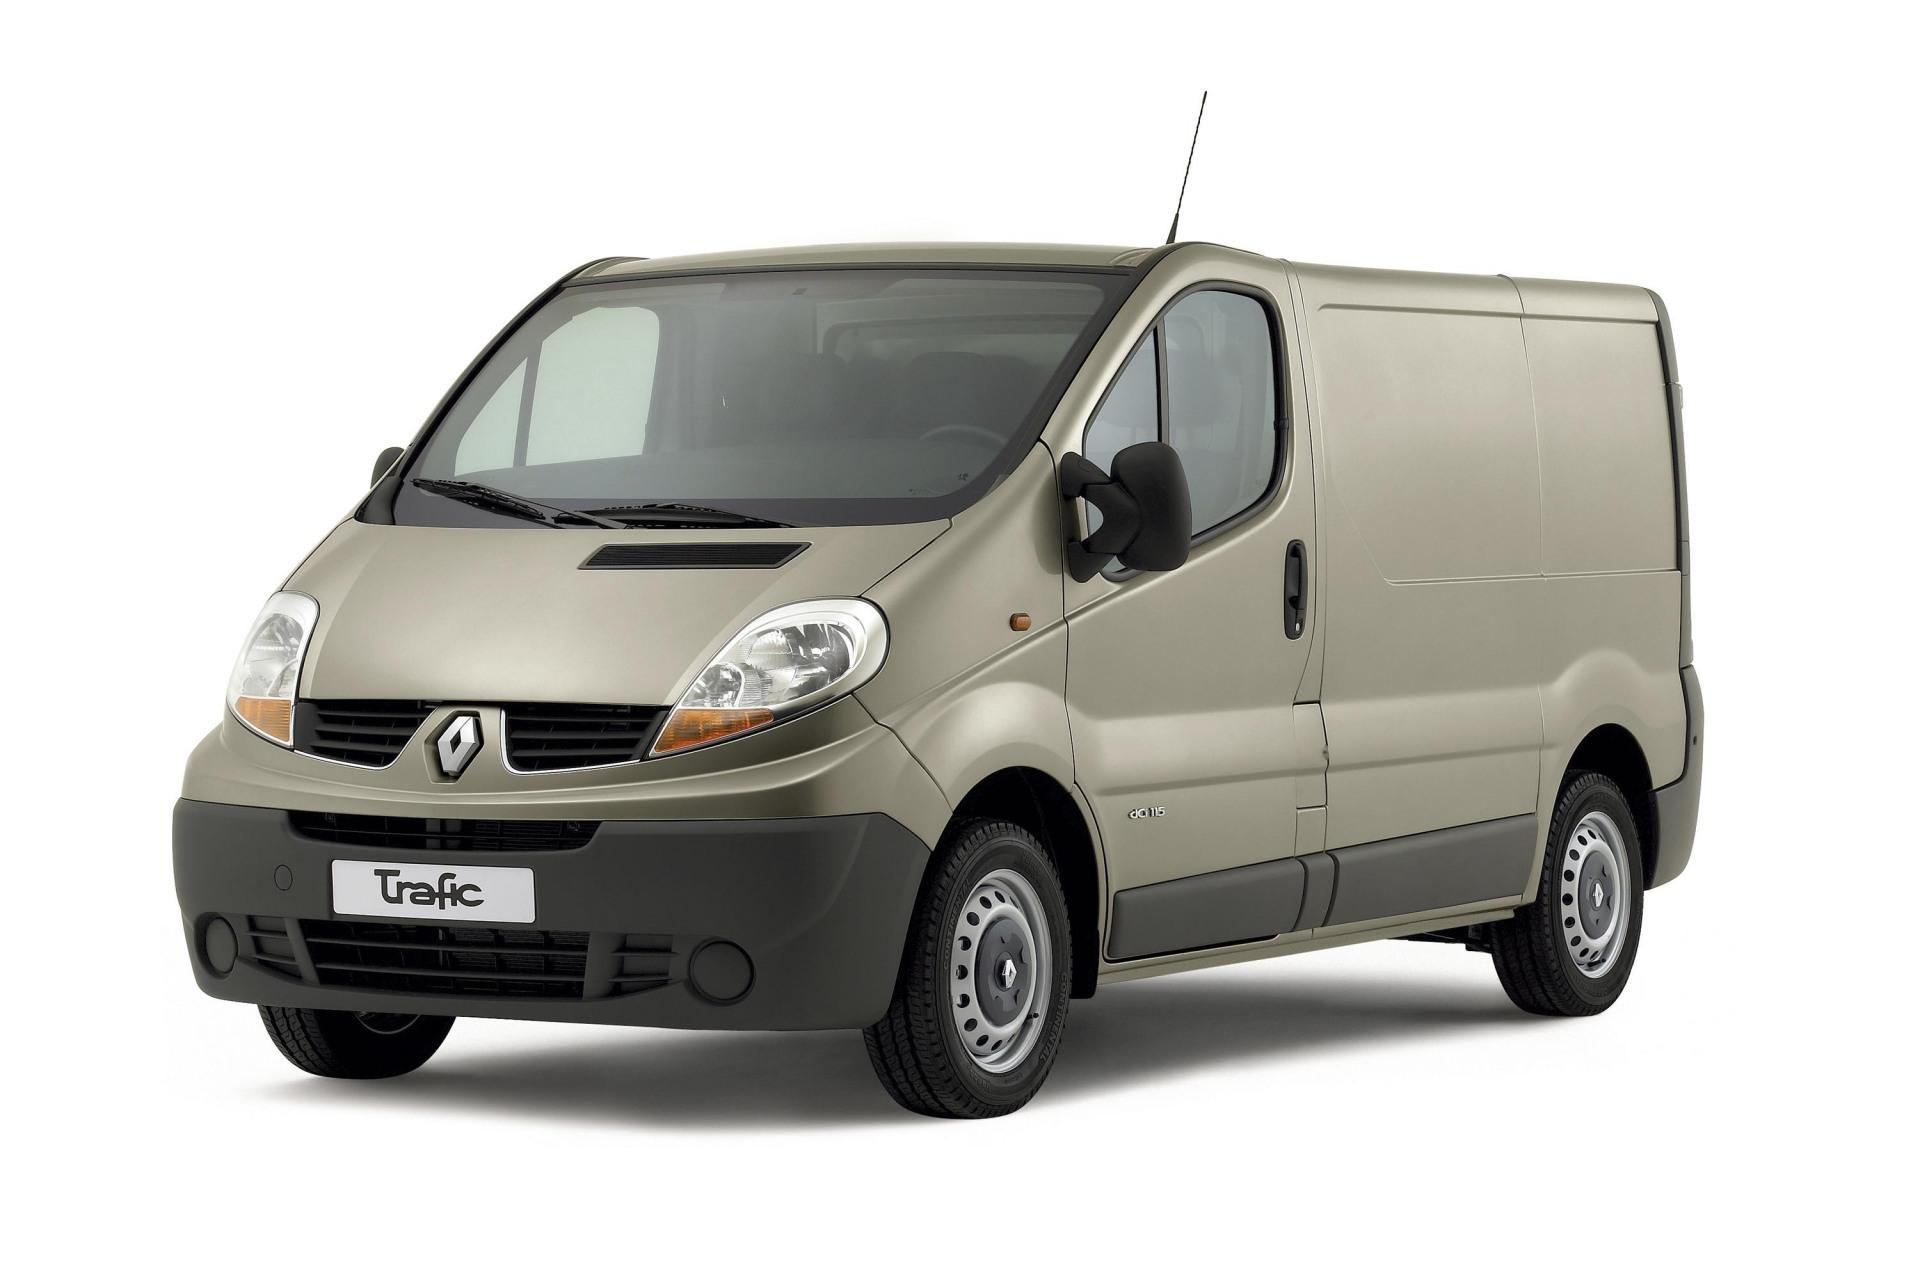 2009 renault trafic photos informations articles. Black Bedroom Furniture Sets. Home Design Ideas